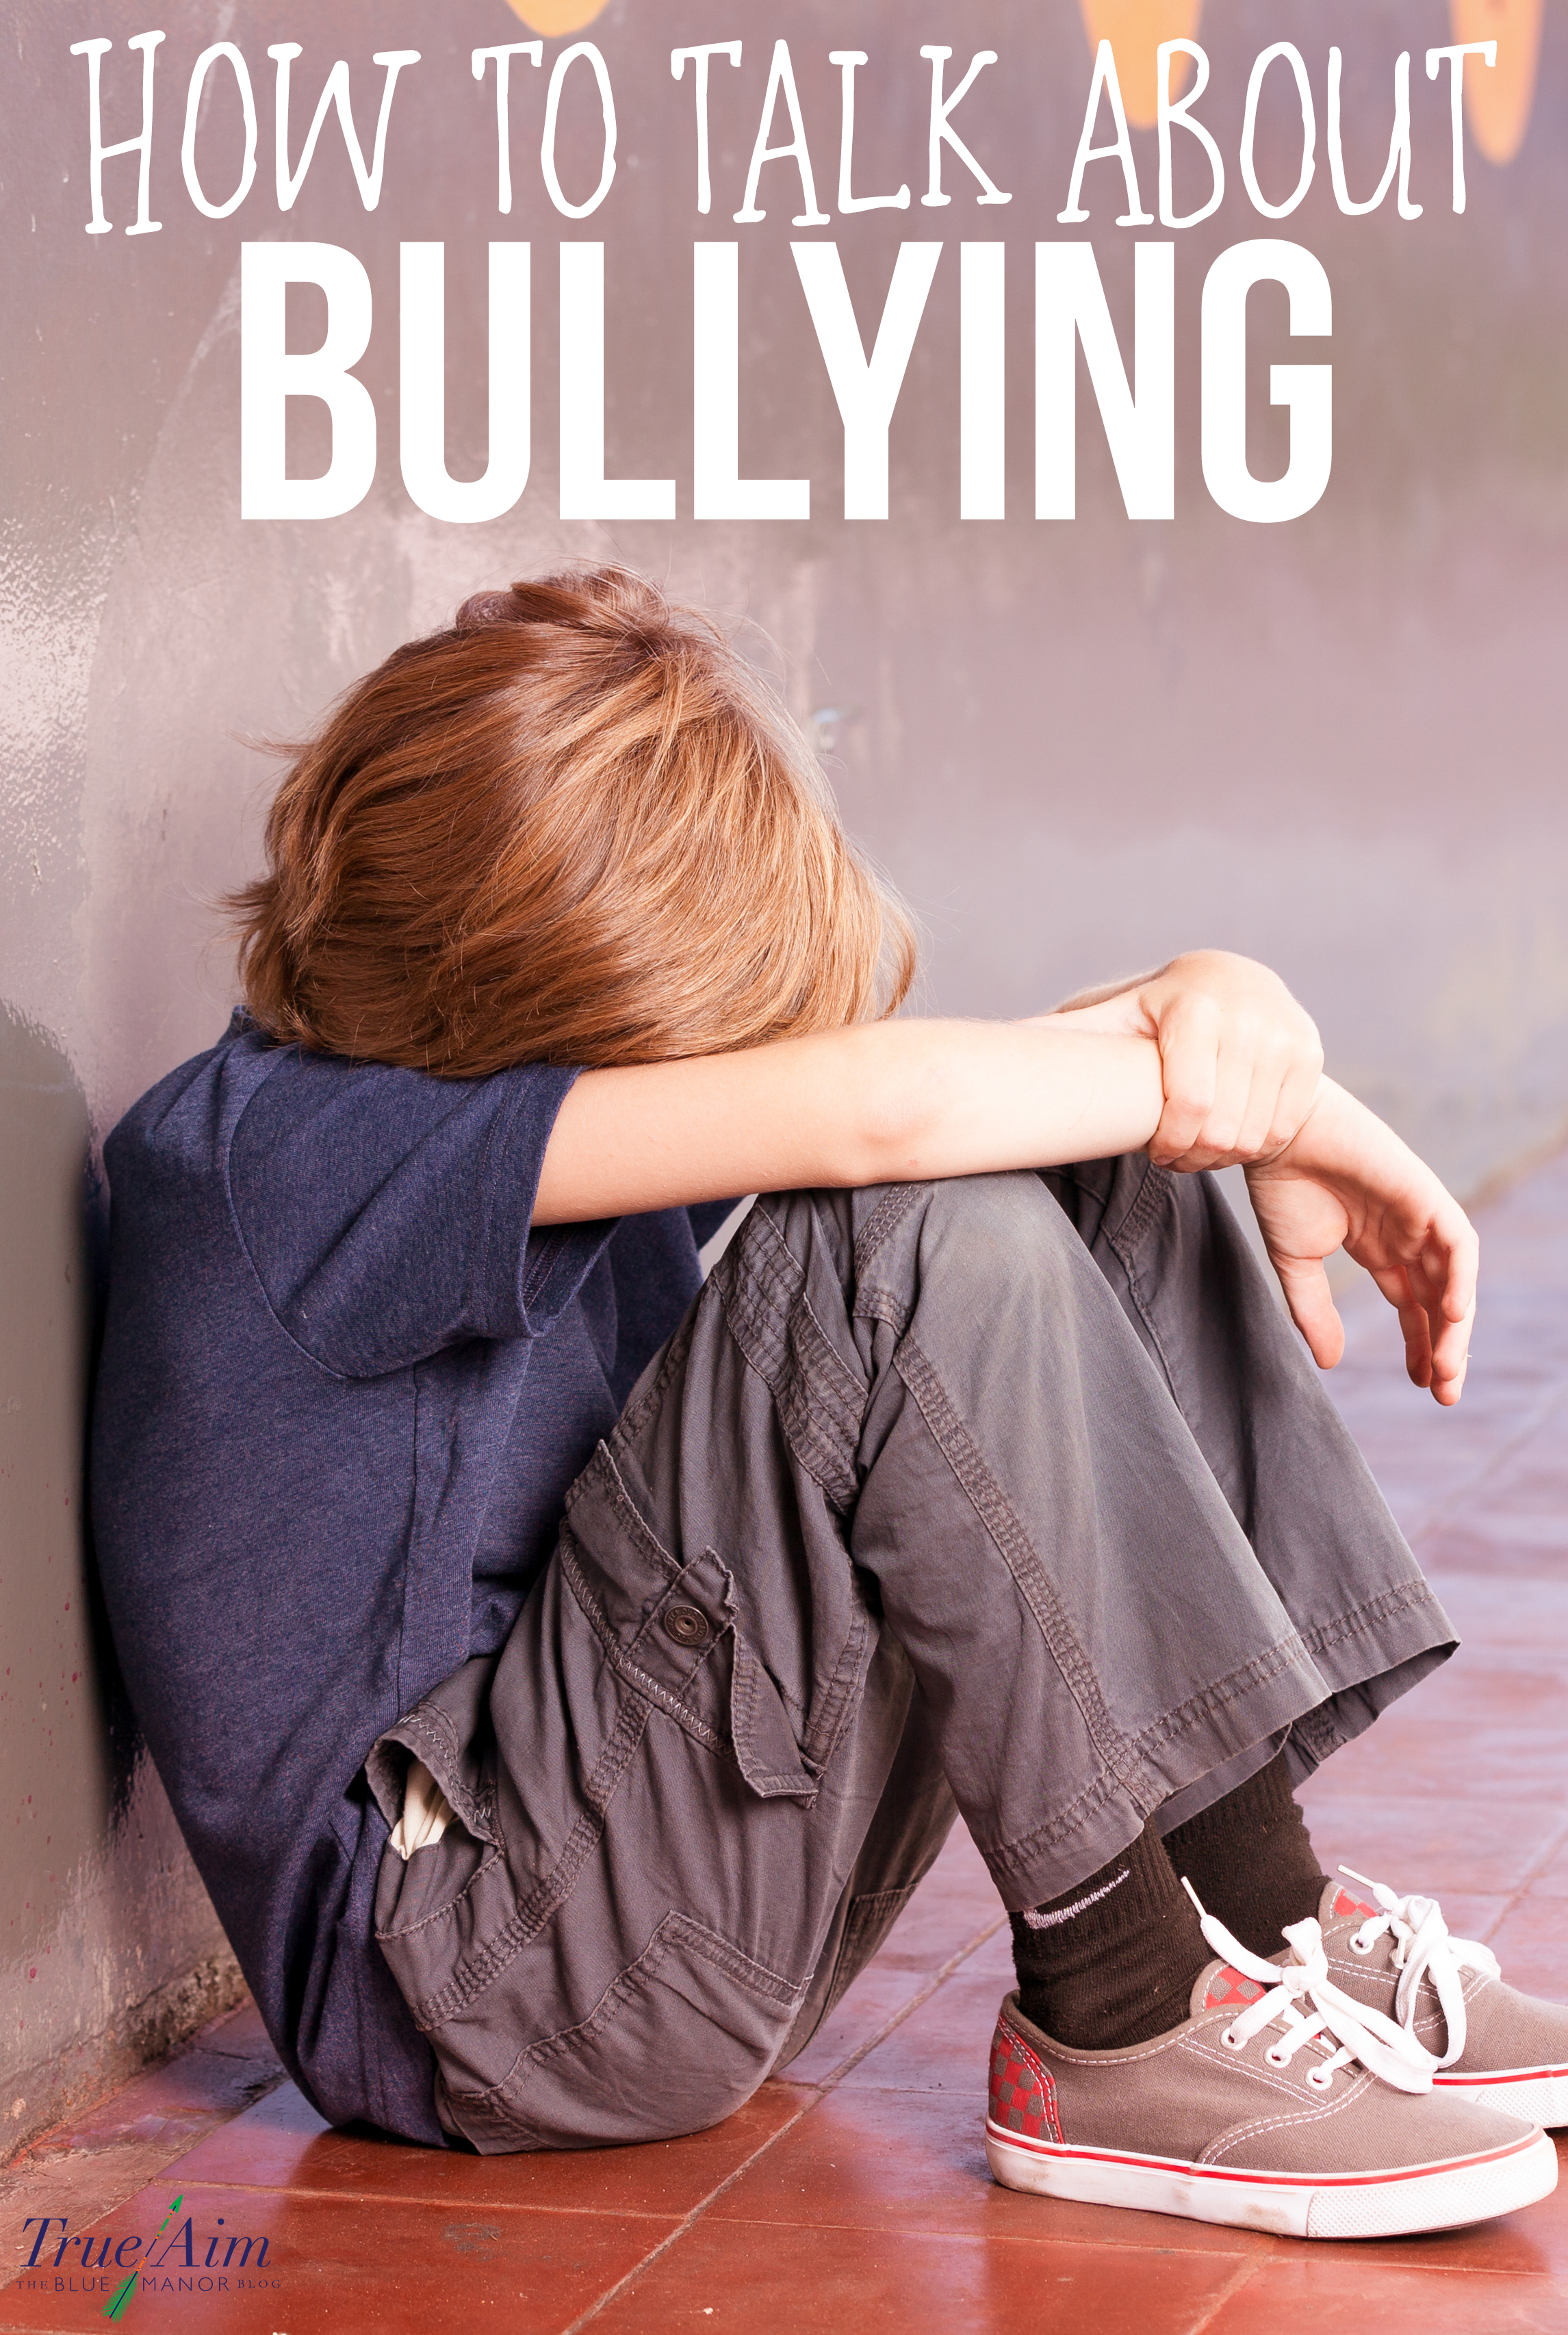 With school starting, bullying is something no one wants to talk about, but it's unfortunately common. It's important to talk to your kids about bullying, and what to do if they see it.